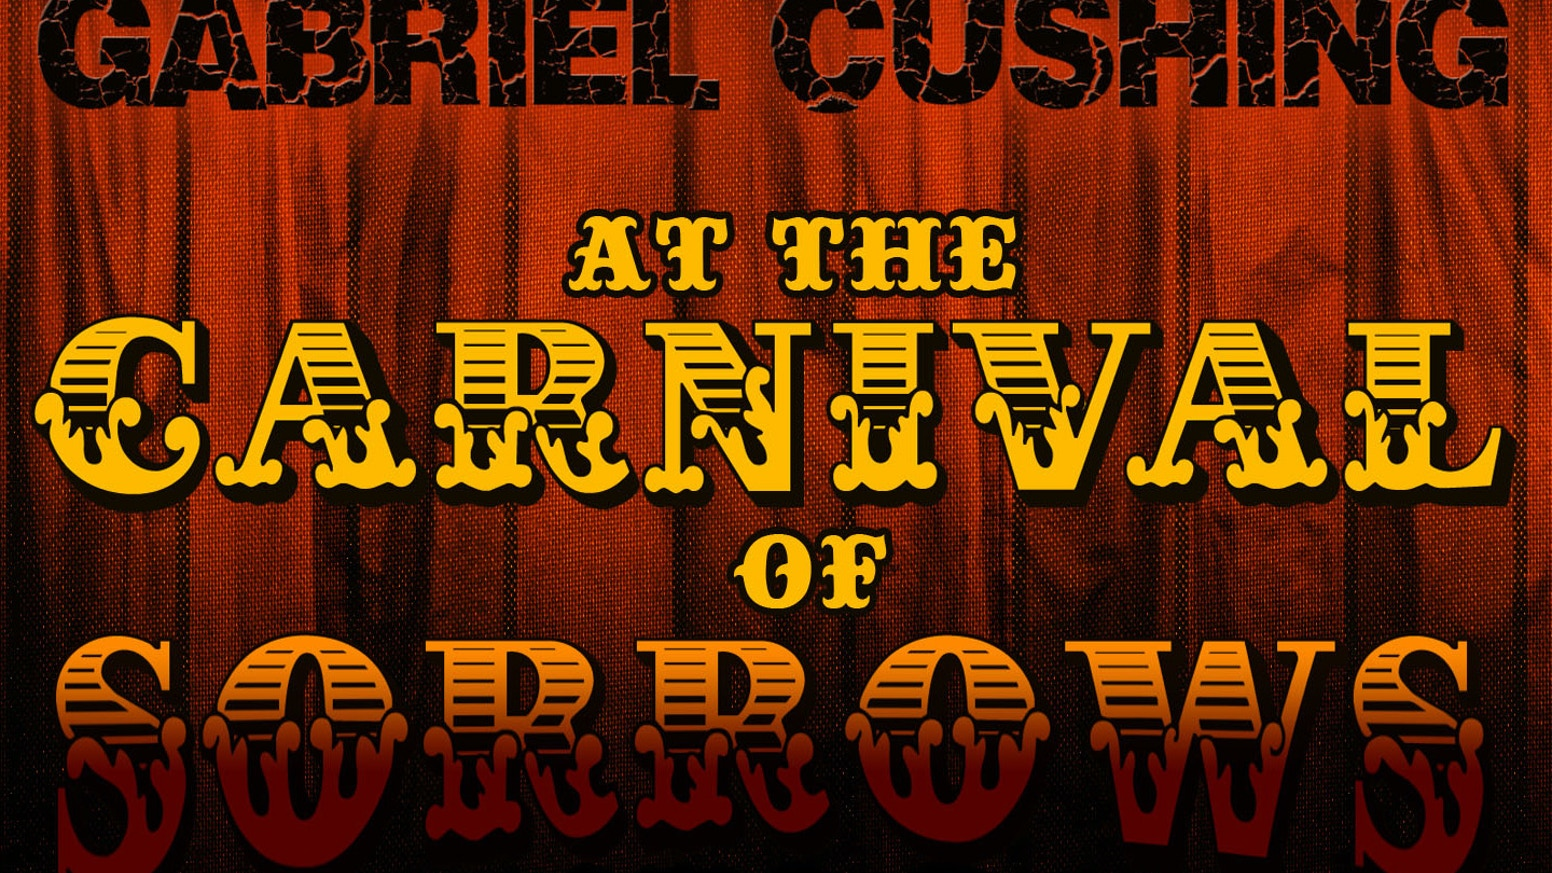 gabriel cushing at the carnival of sorrows web series by the great